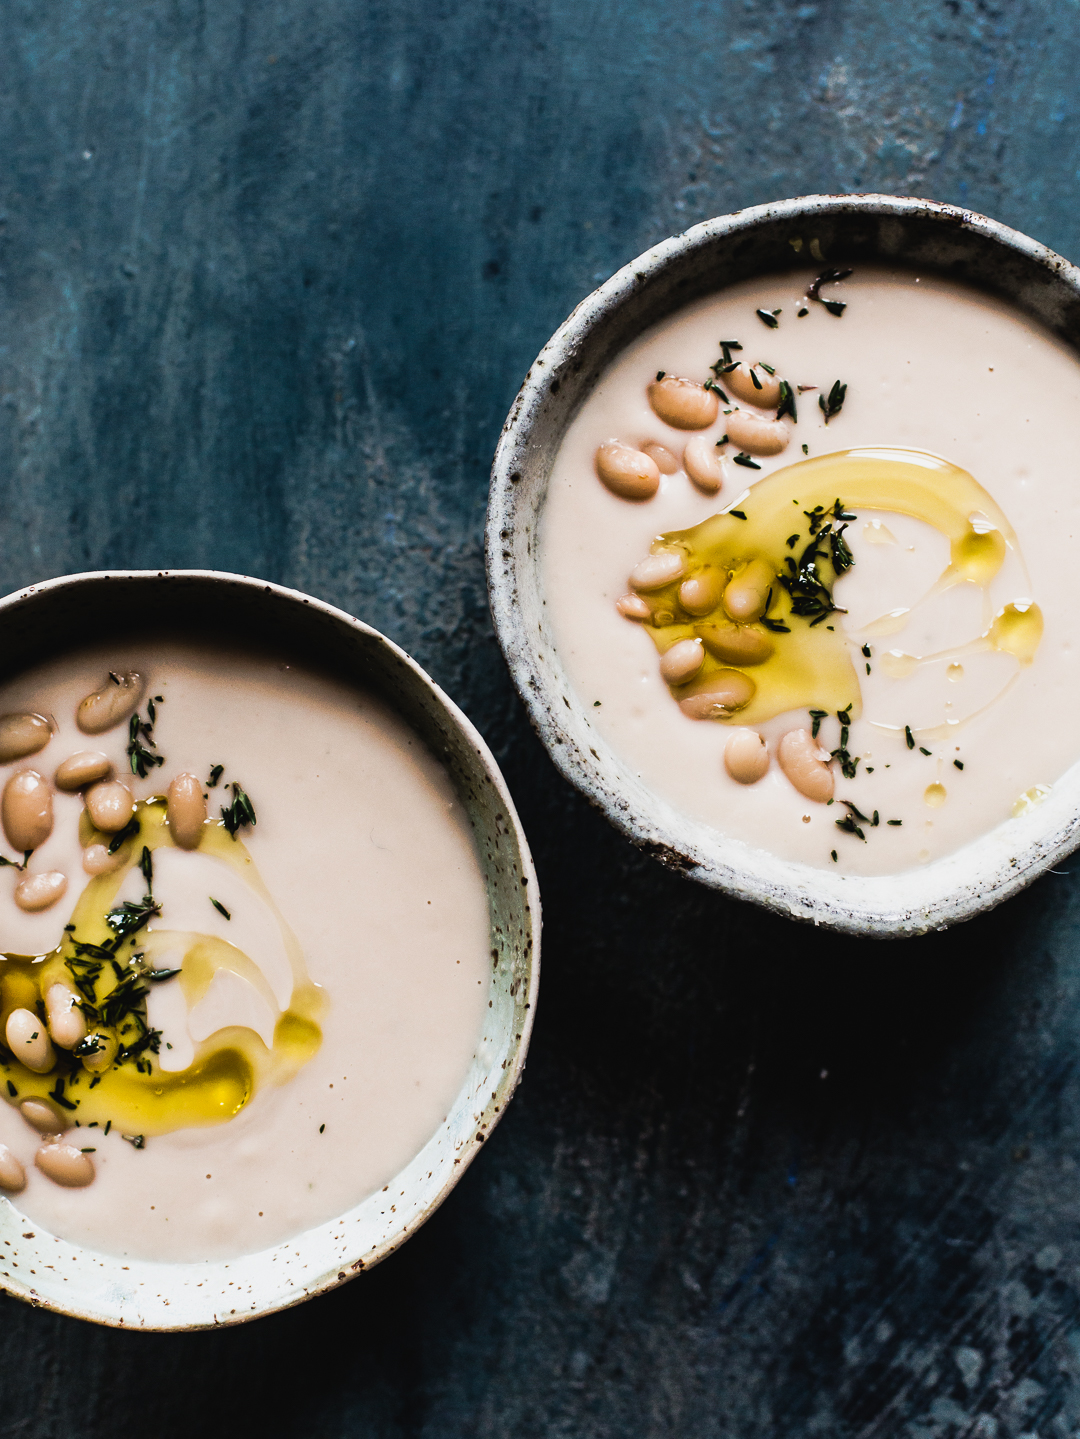 Skinny Instant Pot recipes: Instant Pot White Bean Soup | Heartbeet Kitchen